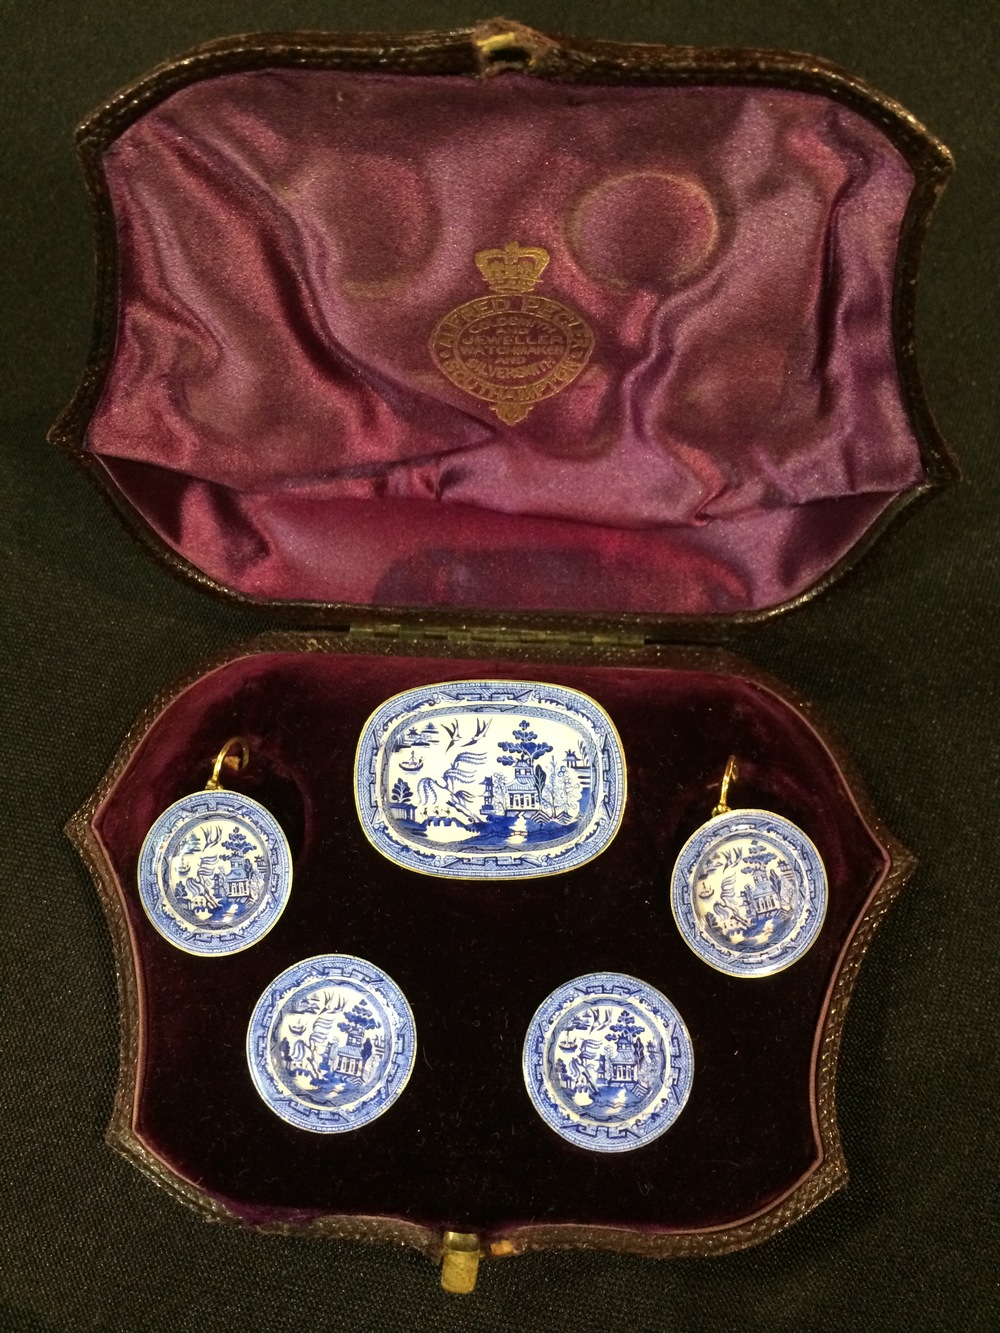 Victorian enameled miniature porcelain and gold earrings, cufflinks and pin suite.  Quite beautiful and unique, we have never seen anything like it!